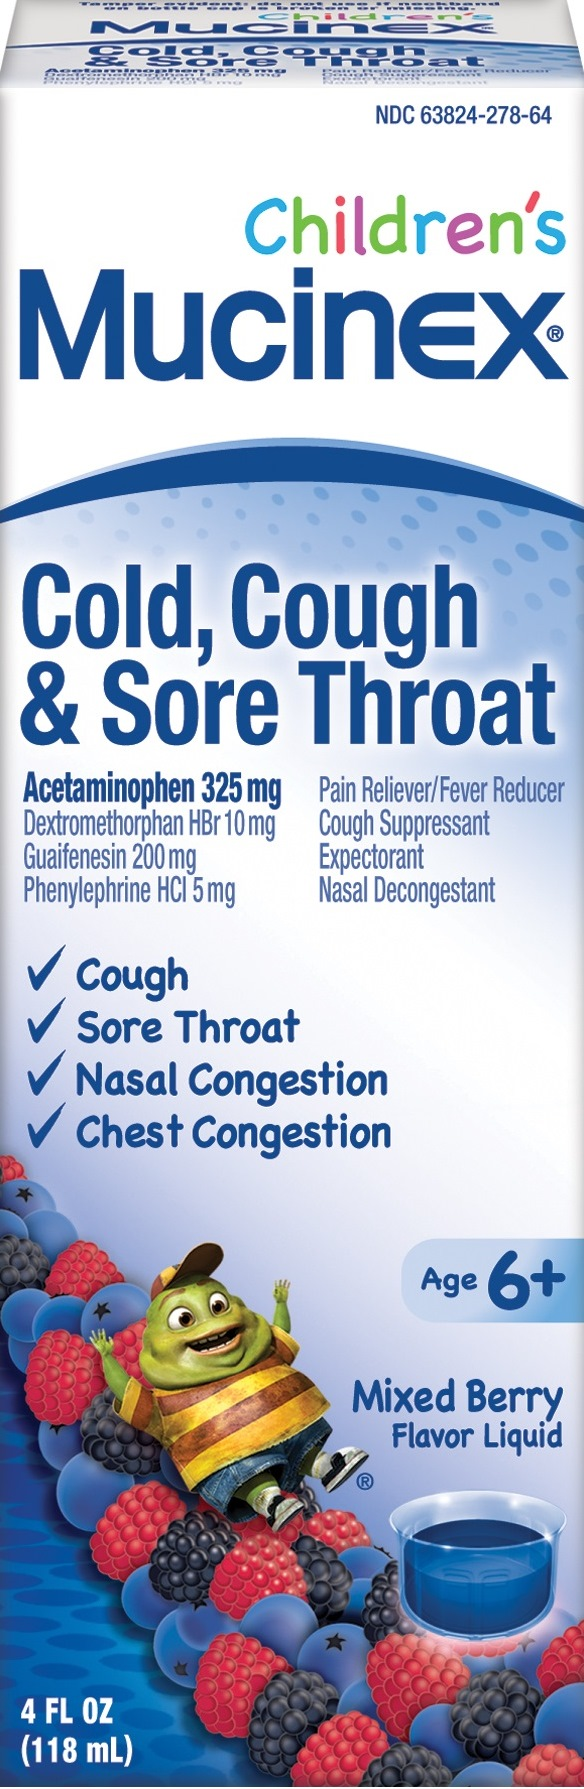 MUCINEX® Children's Cold, Cough & Sore Throat - Mixed Berry